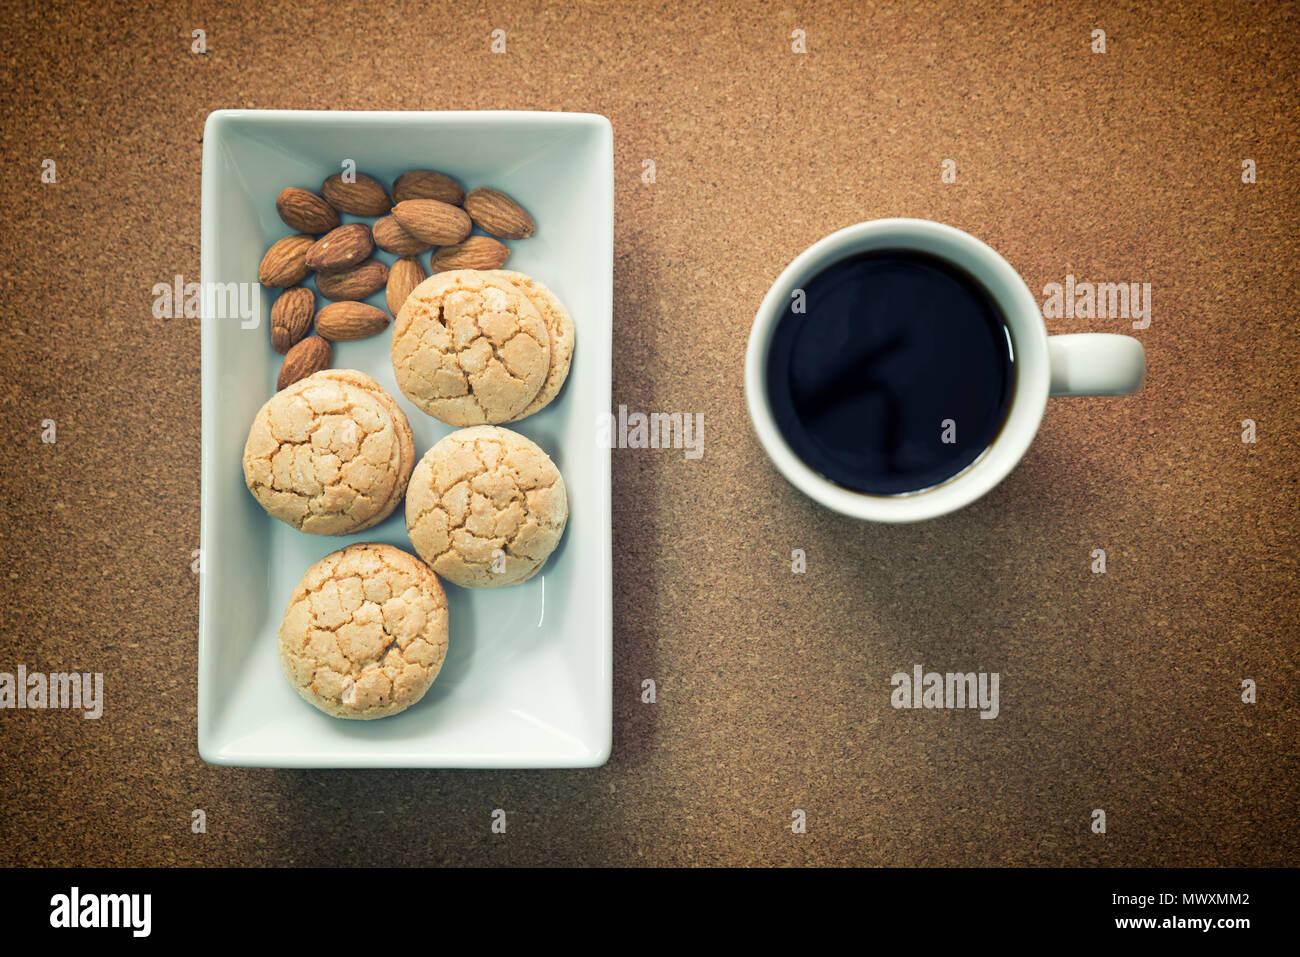 Almond Cookies And A Cup Of Coffee Stock Photo